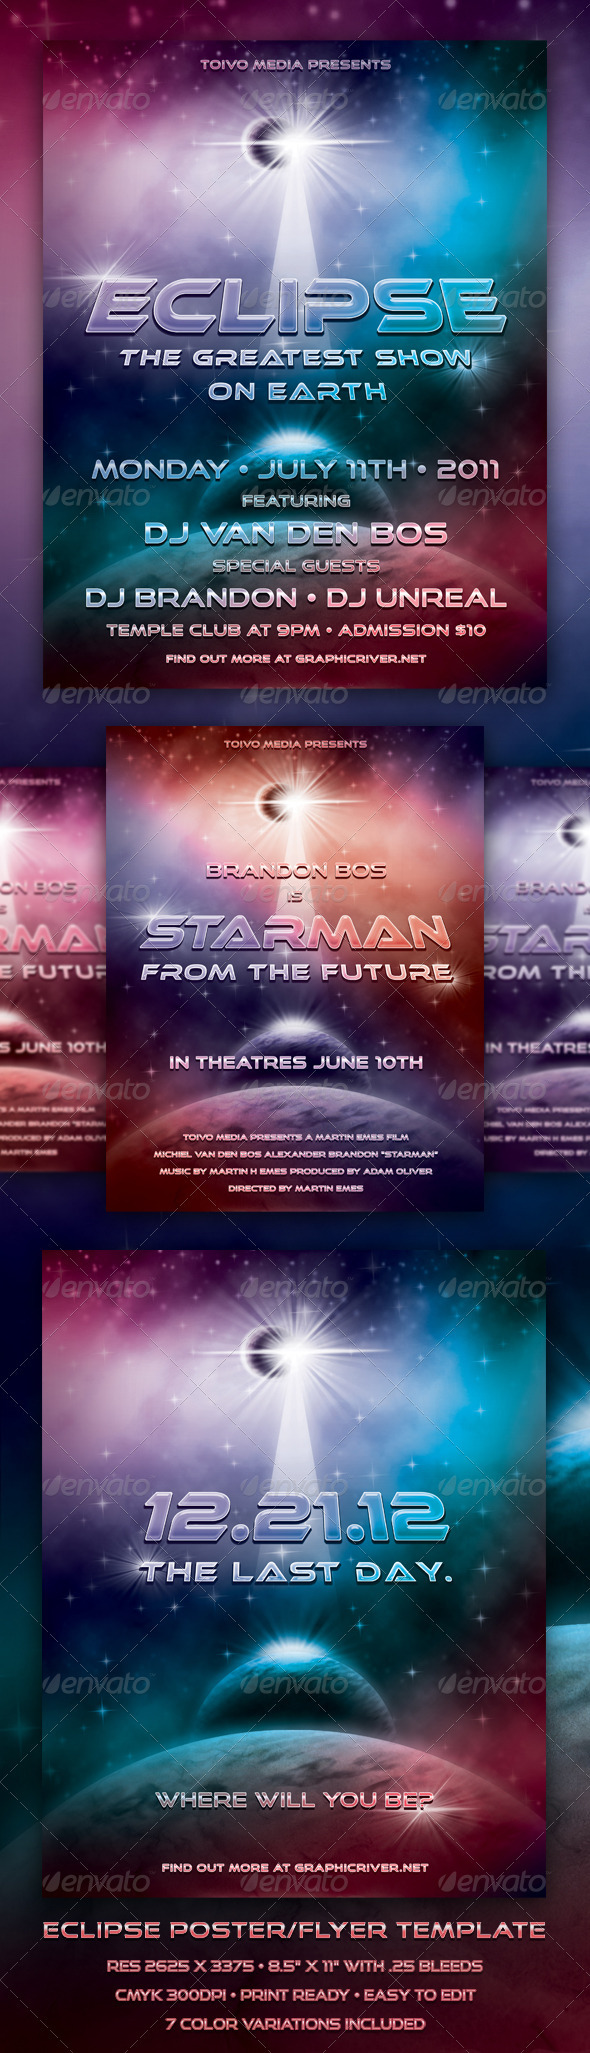 Eclipse Poster/Flyer Template - Clubs & Parties Events